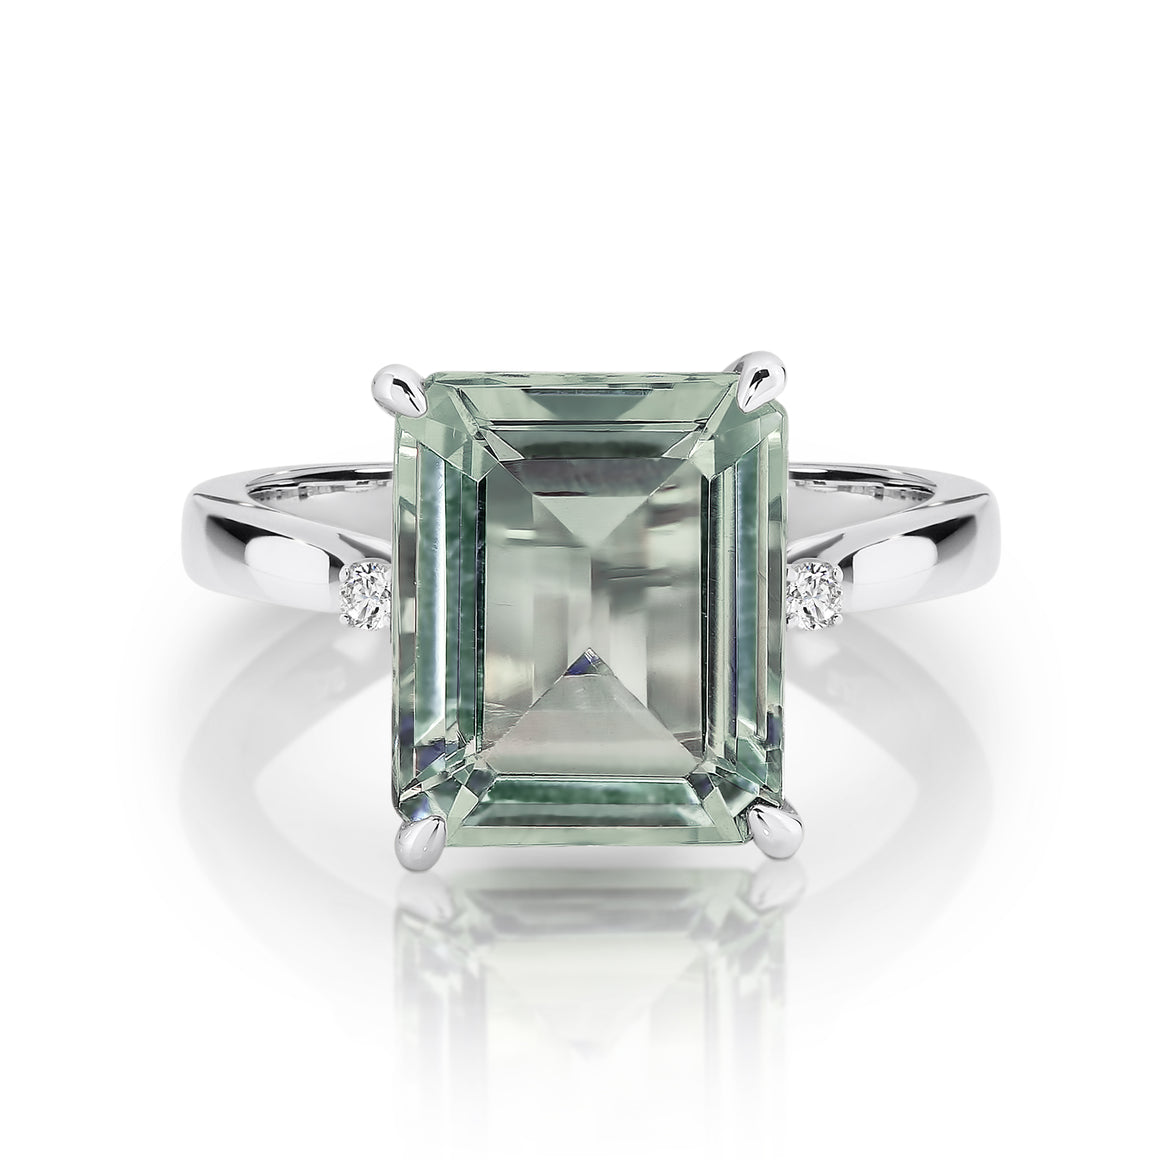 Green Amethyst & Diamond 'Maeve' Ring - Gemma Stone Jewellery